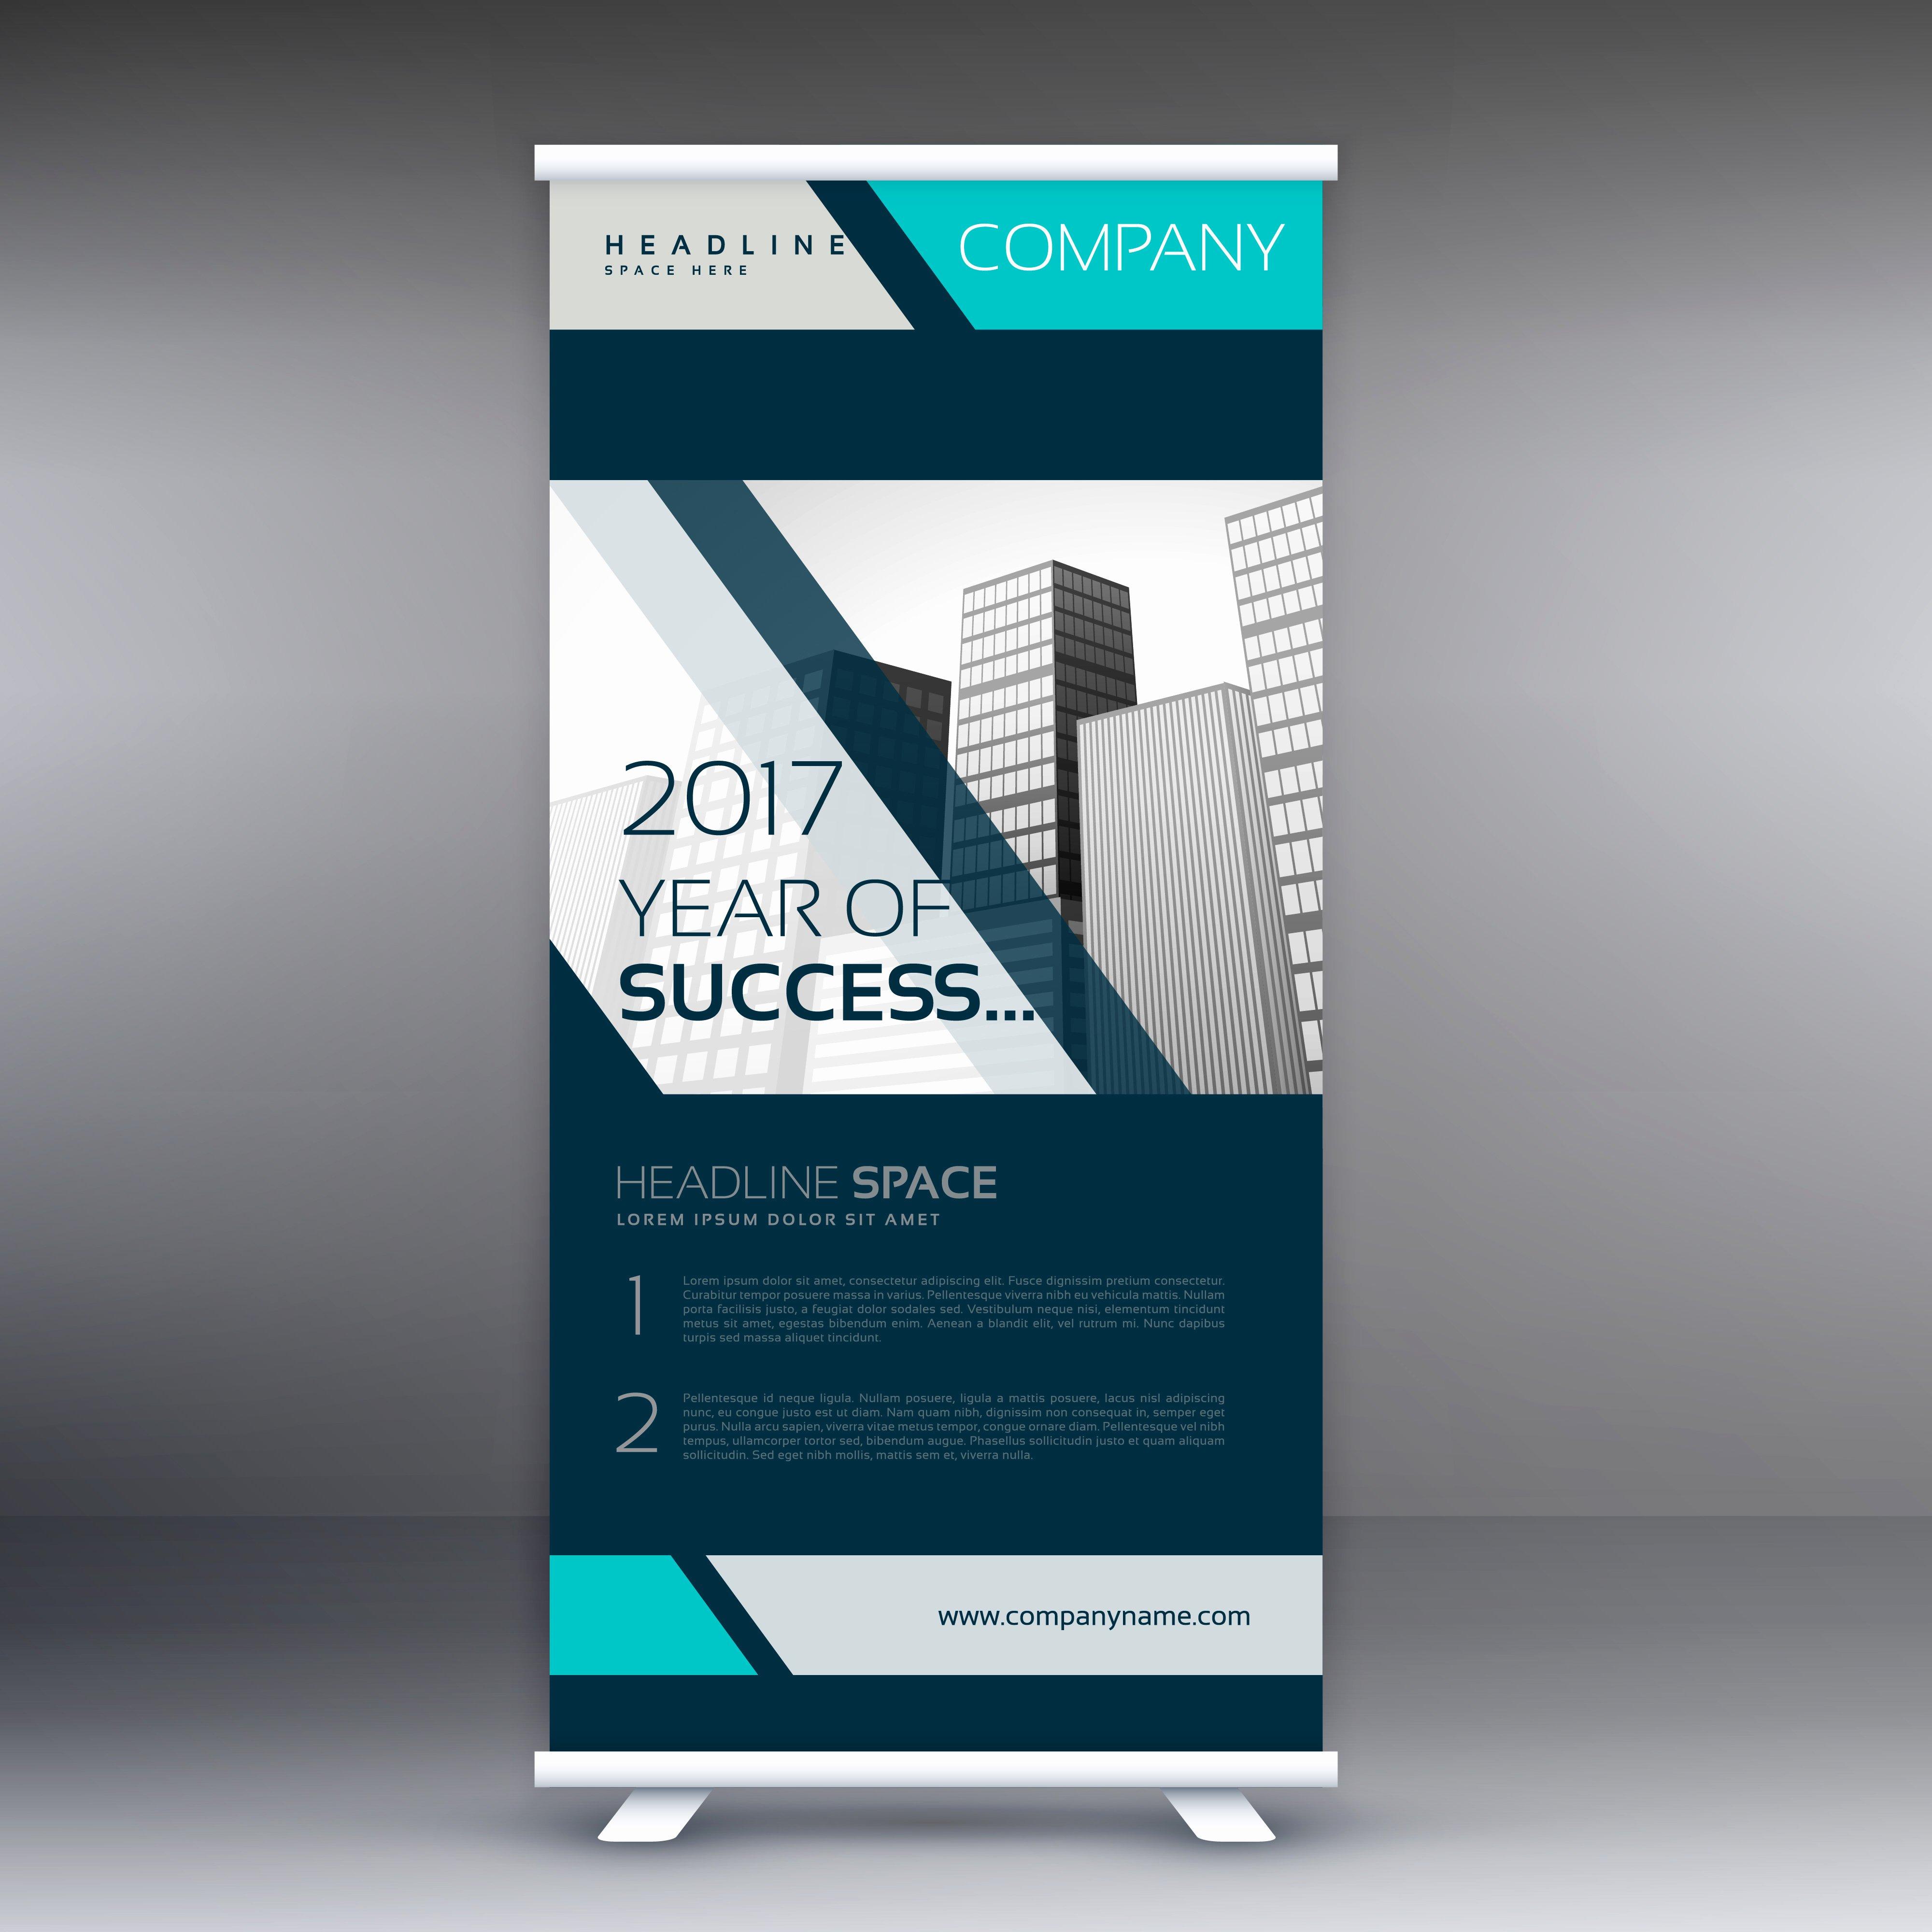 Retractable Banner Template Psd Luxury Business Standee Roll Up Banner Vector Design Download